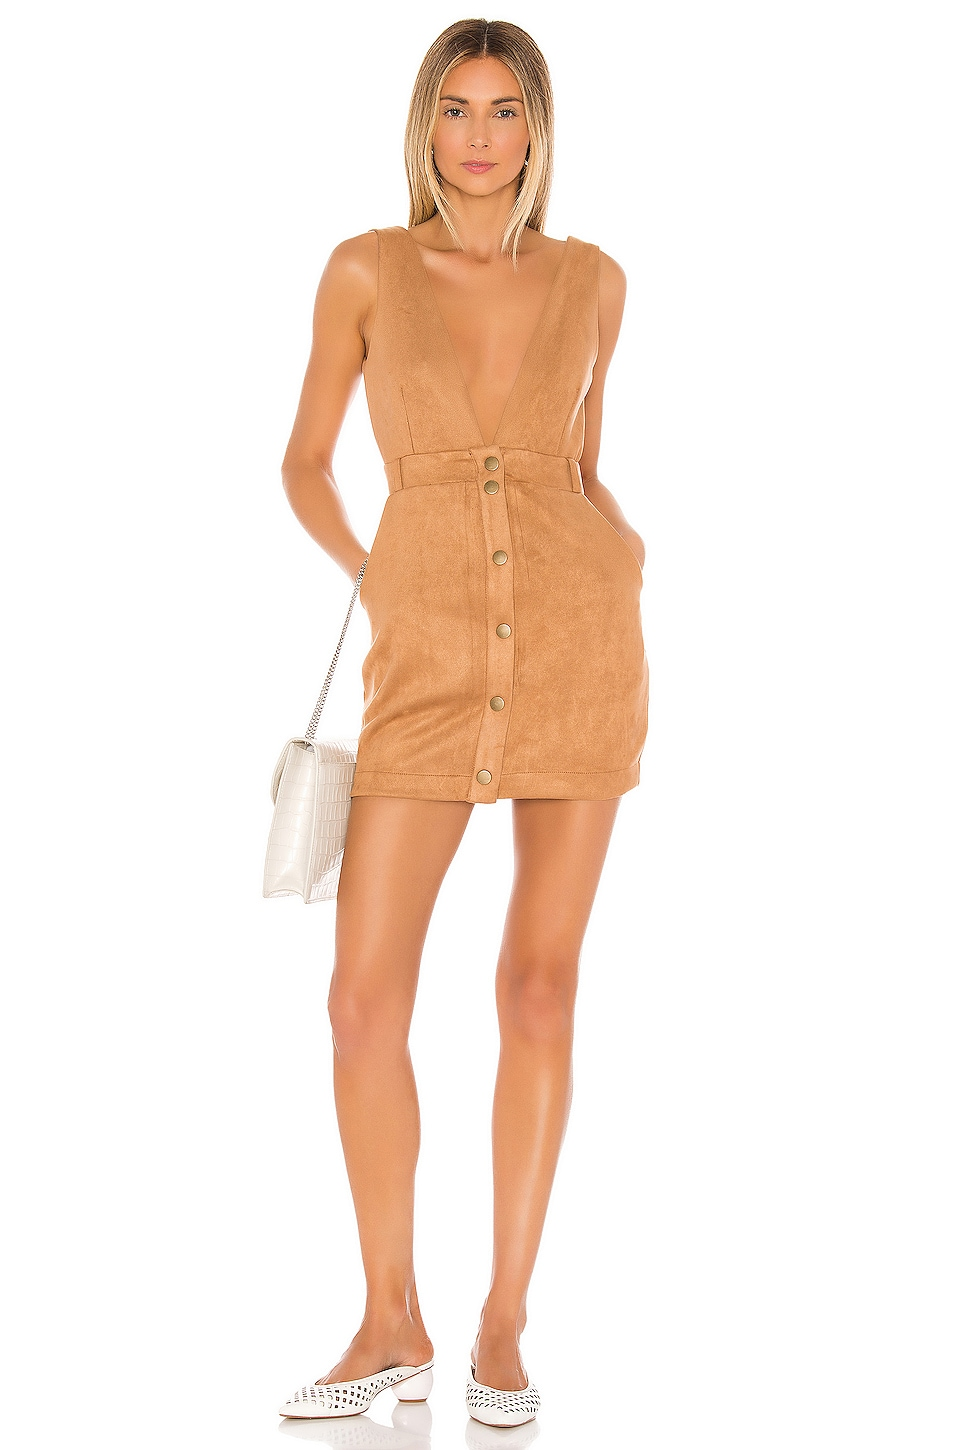 Lovers + Friends Zayden Mini Dress in Camel